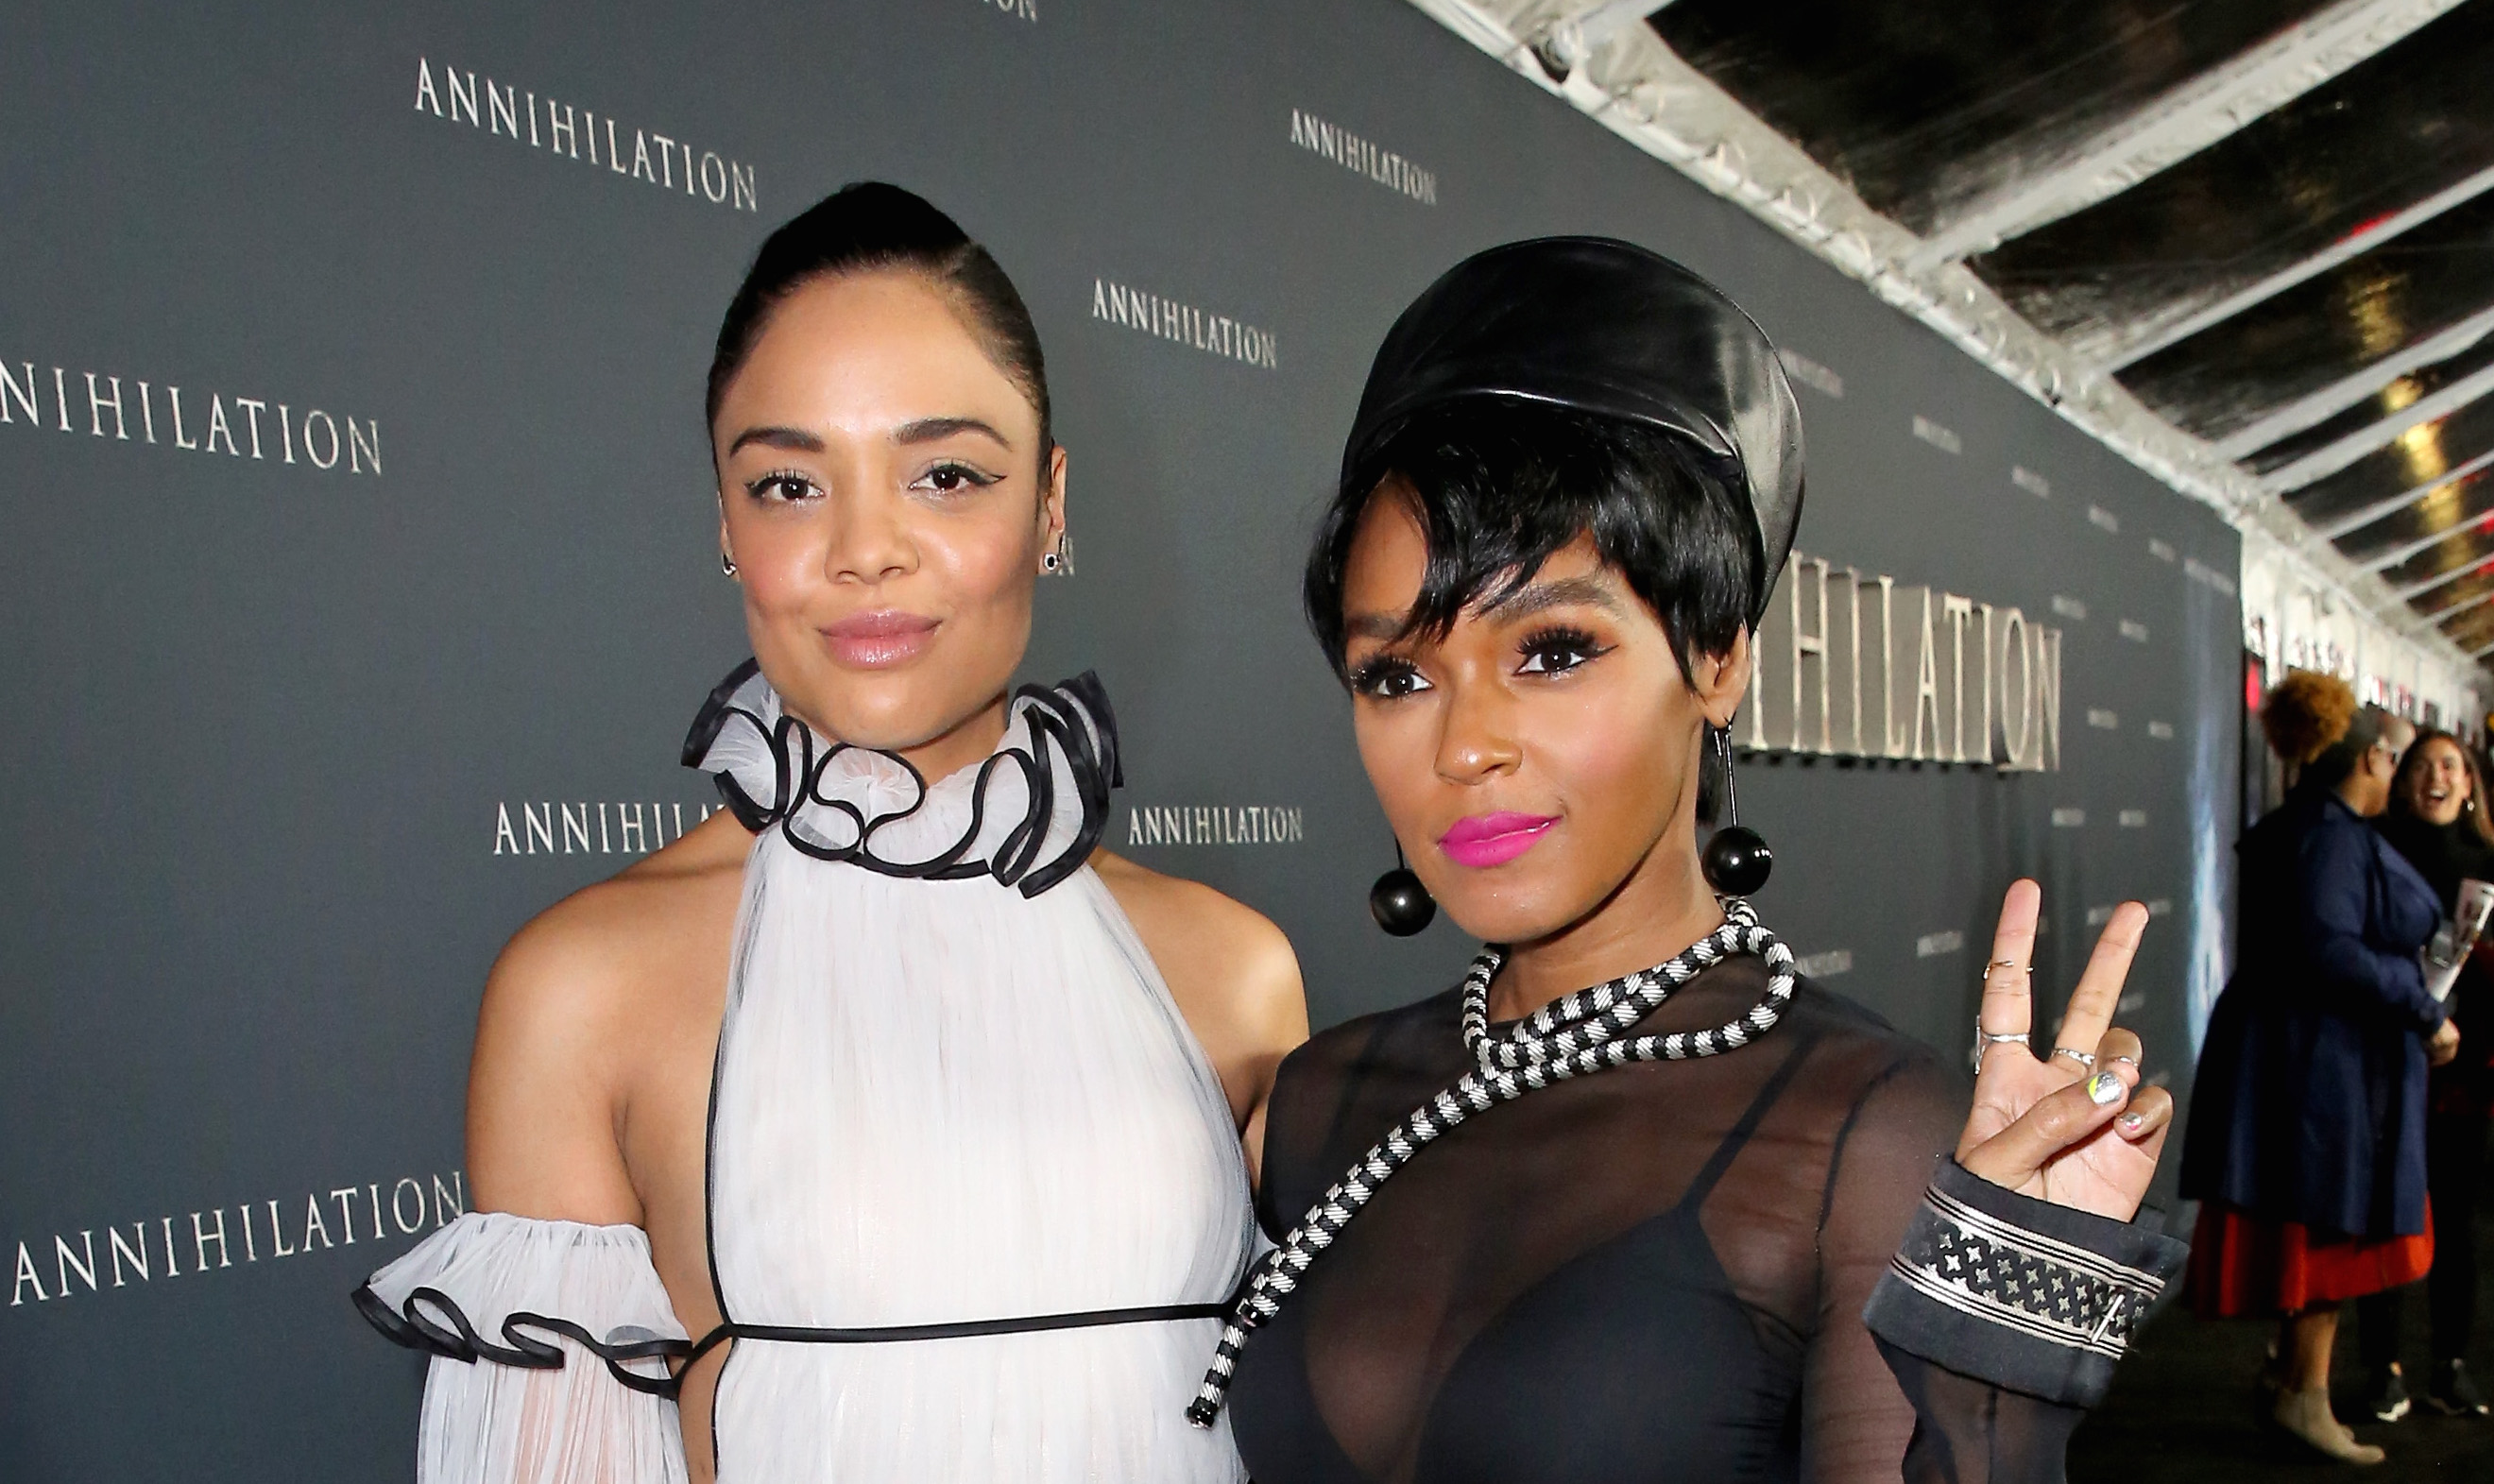 People Really Want Tessa Thompson and Janelle Monáe to Be a Couple